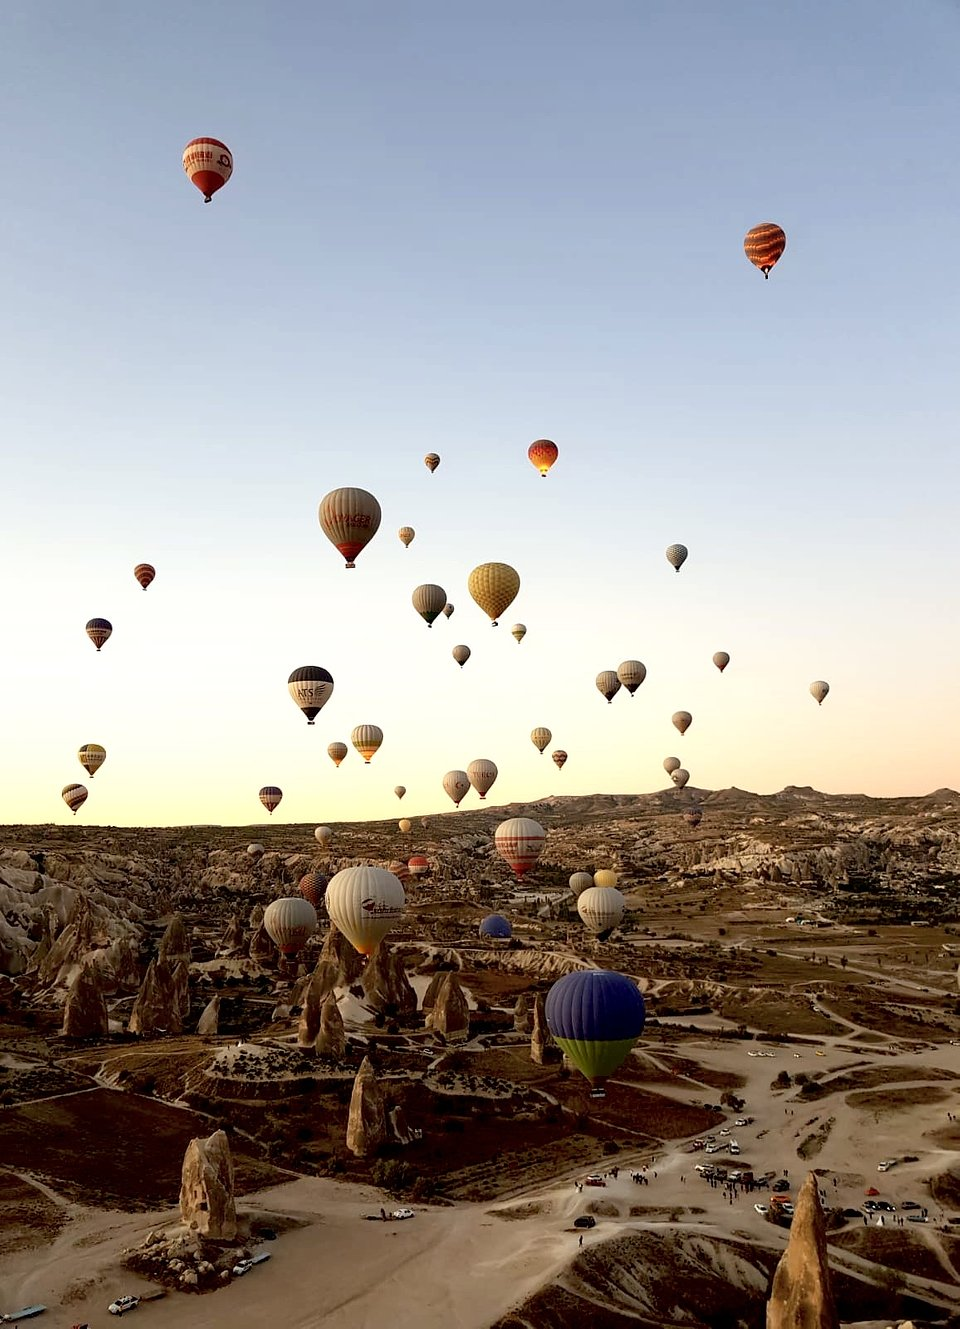 Location: Cappadocia, Turkey